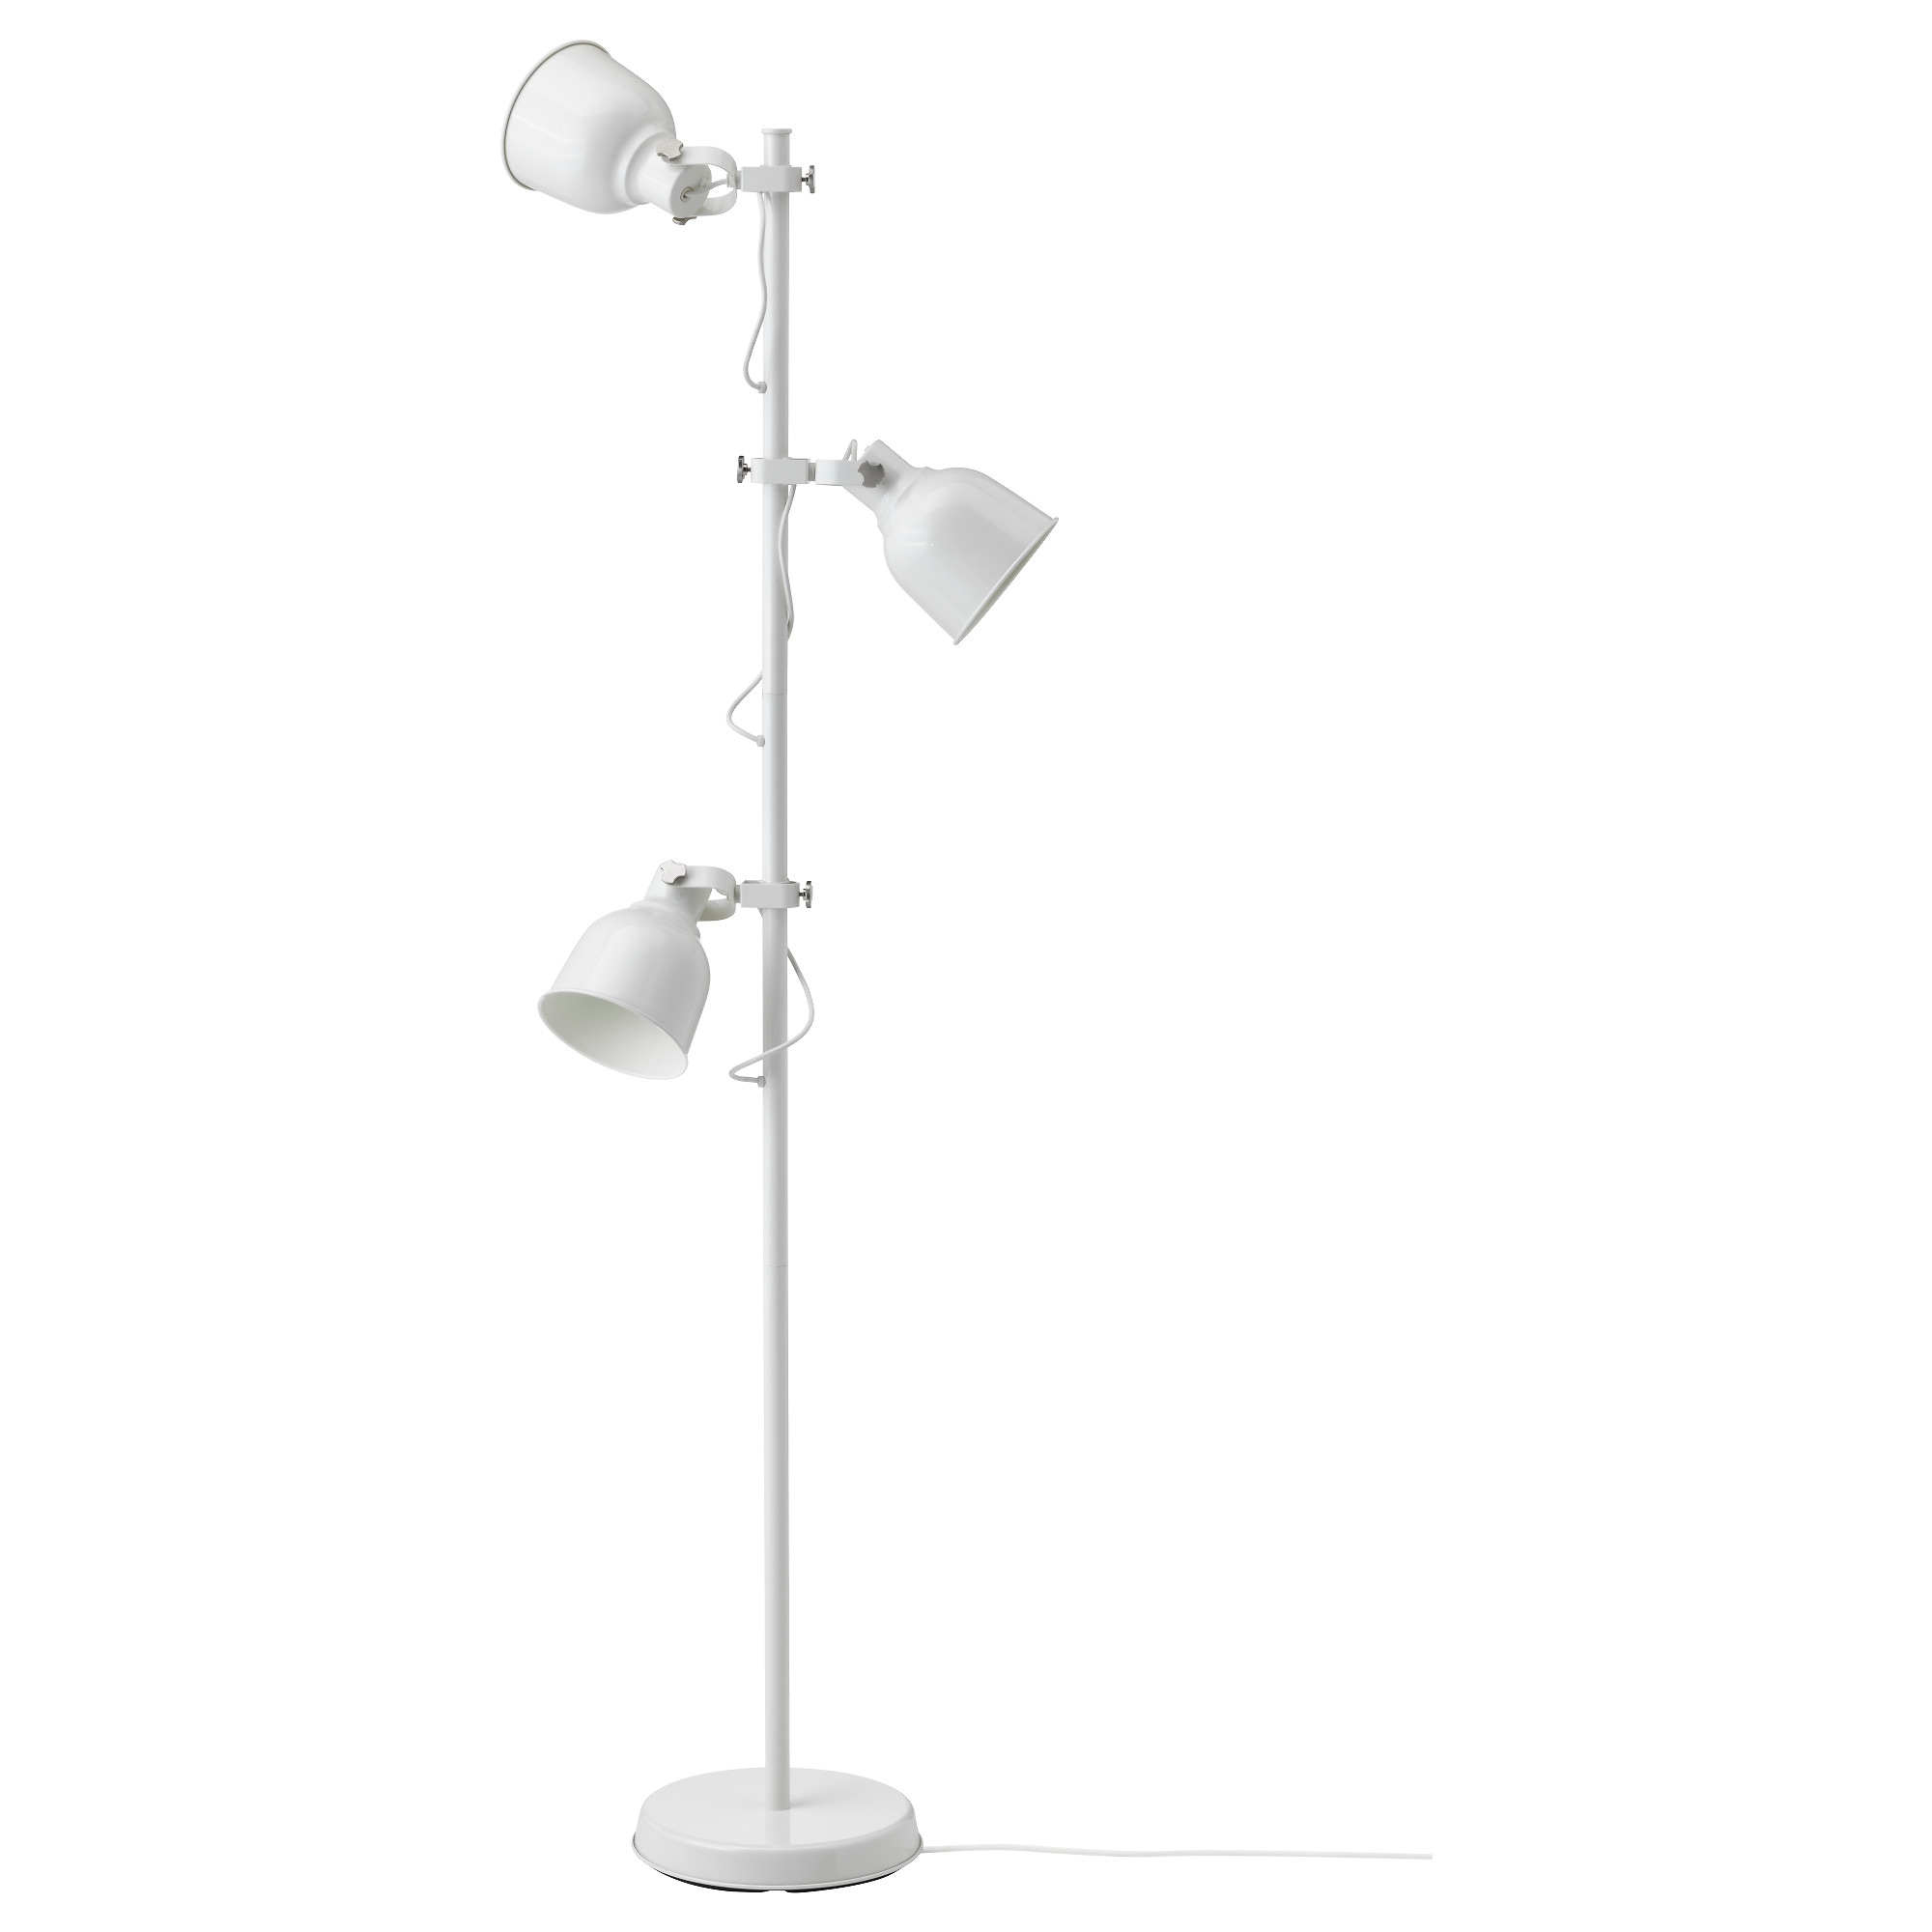 floor lamps  modern  contemporary floor lamps  ikea - hektar floor lamp with spotlights white max  w height